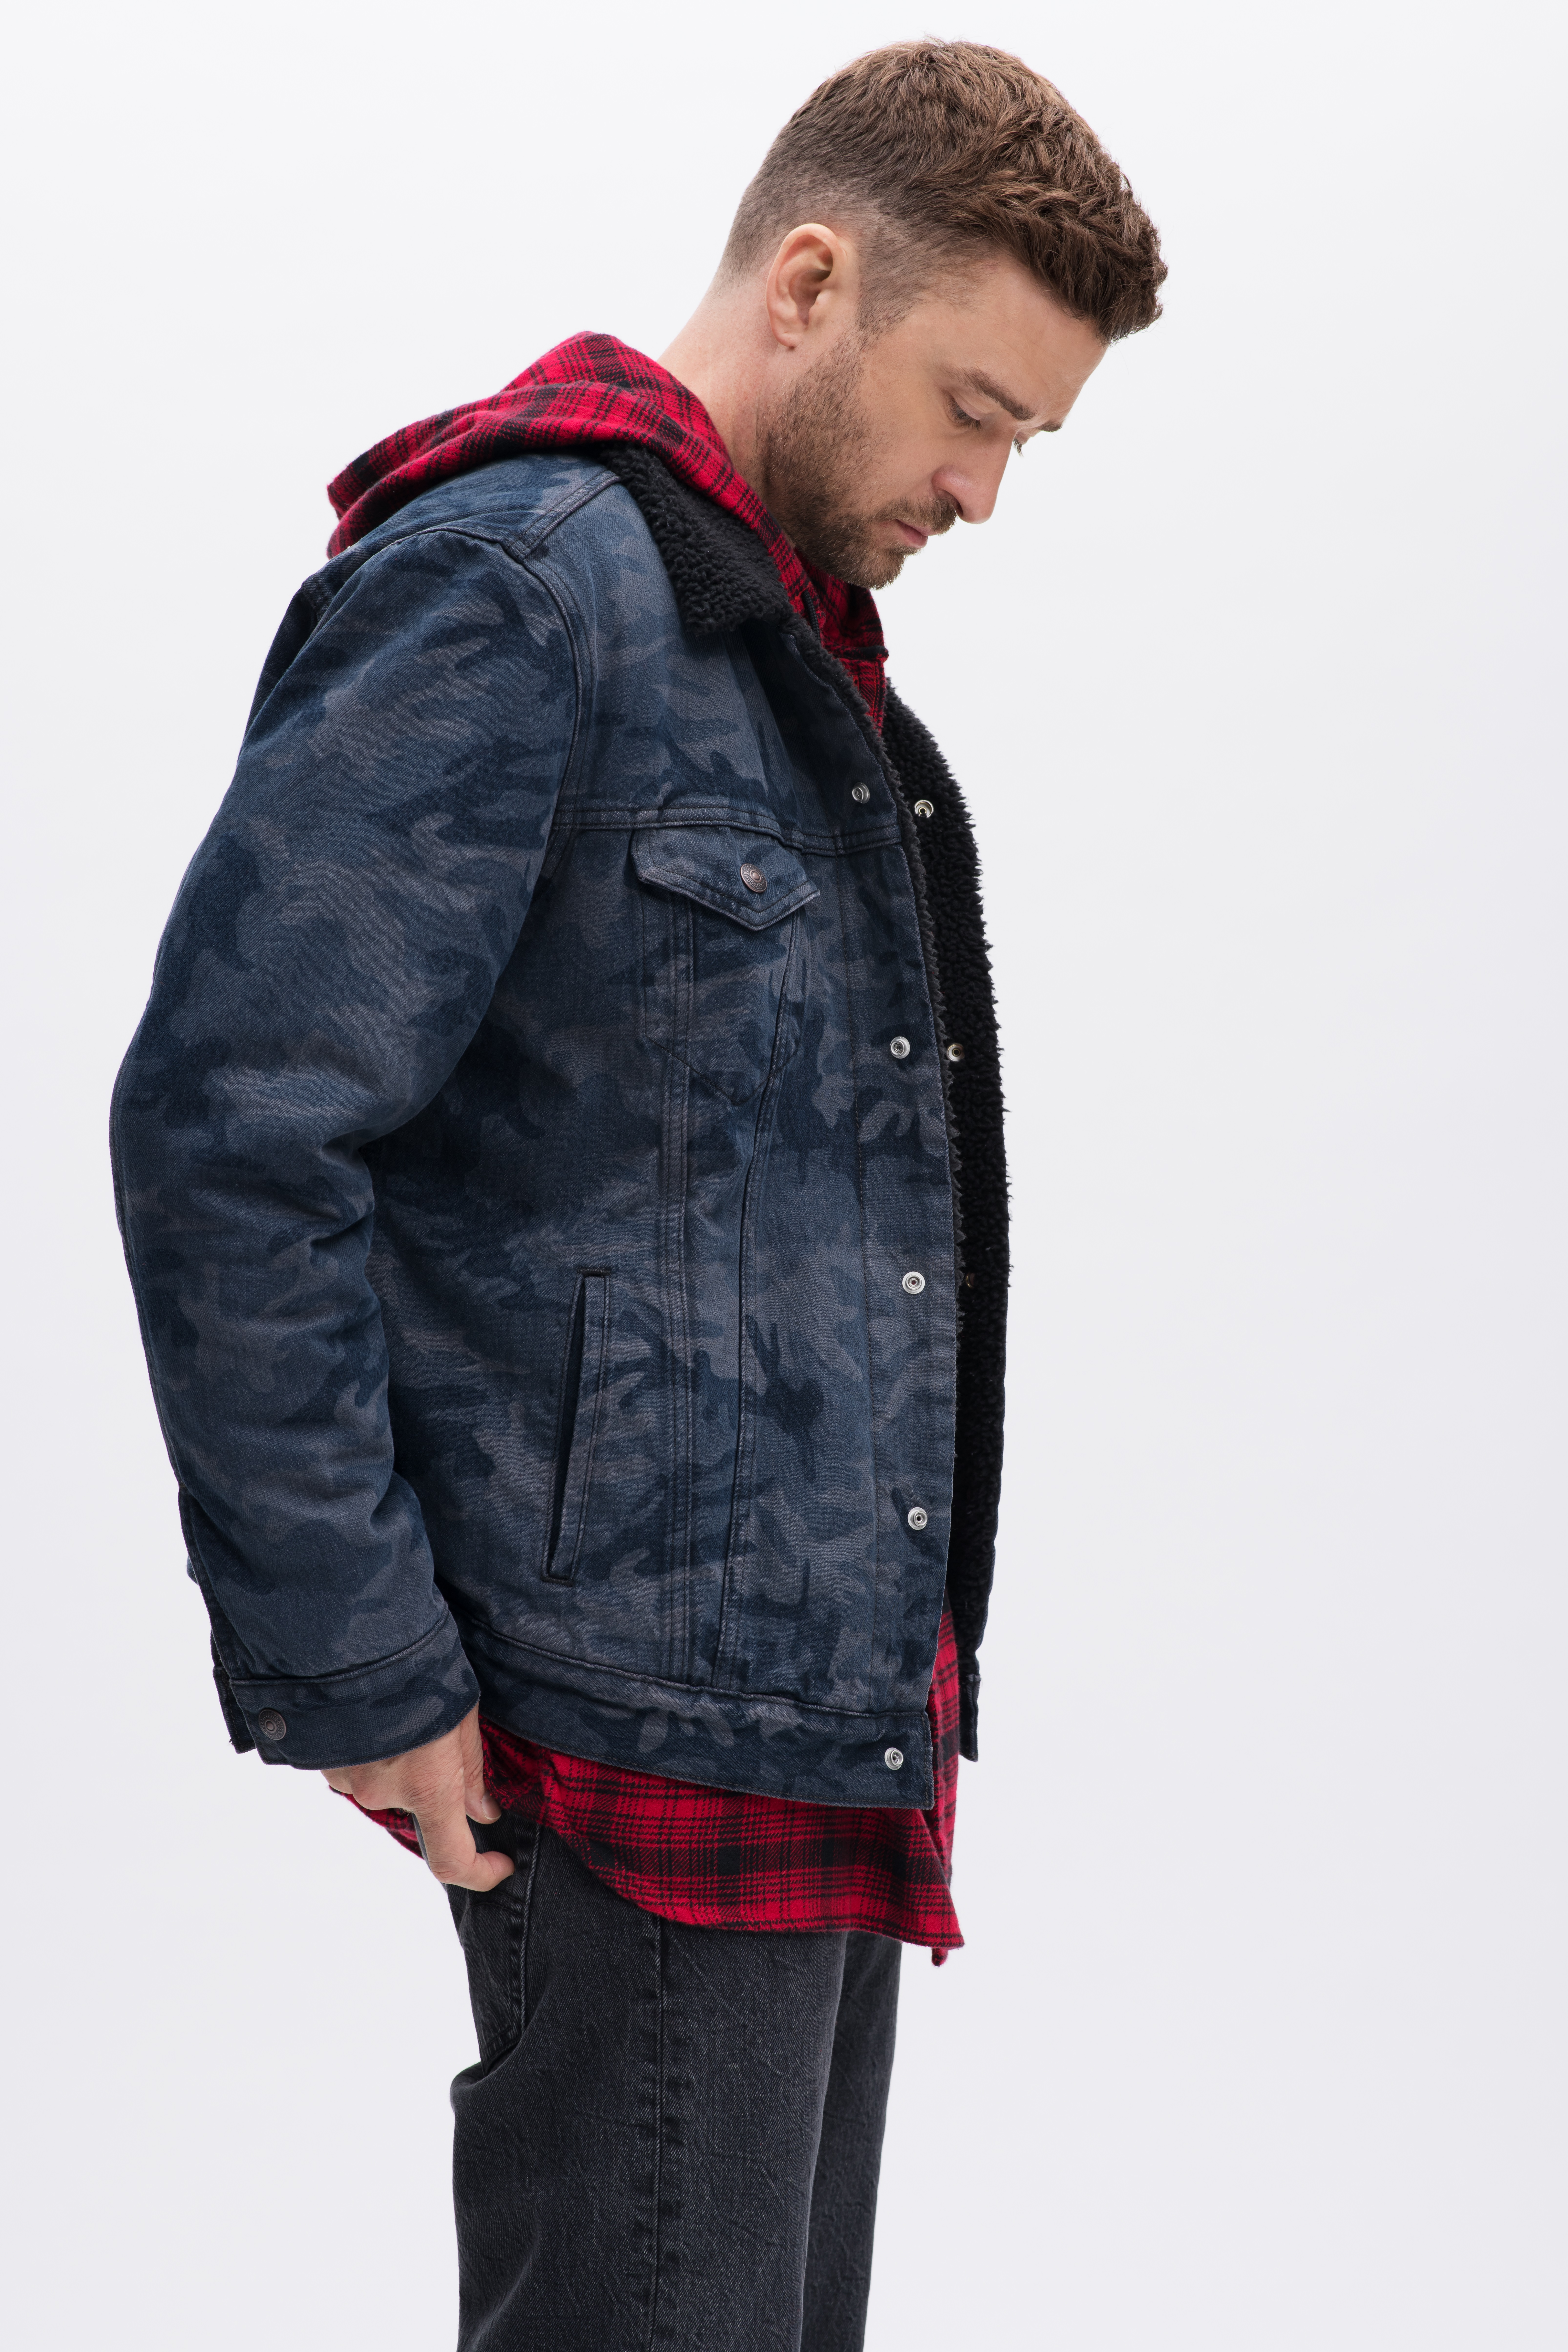 Levi's X Justin Timberlake | Fresh Leaves Collection t5